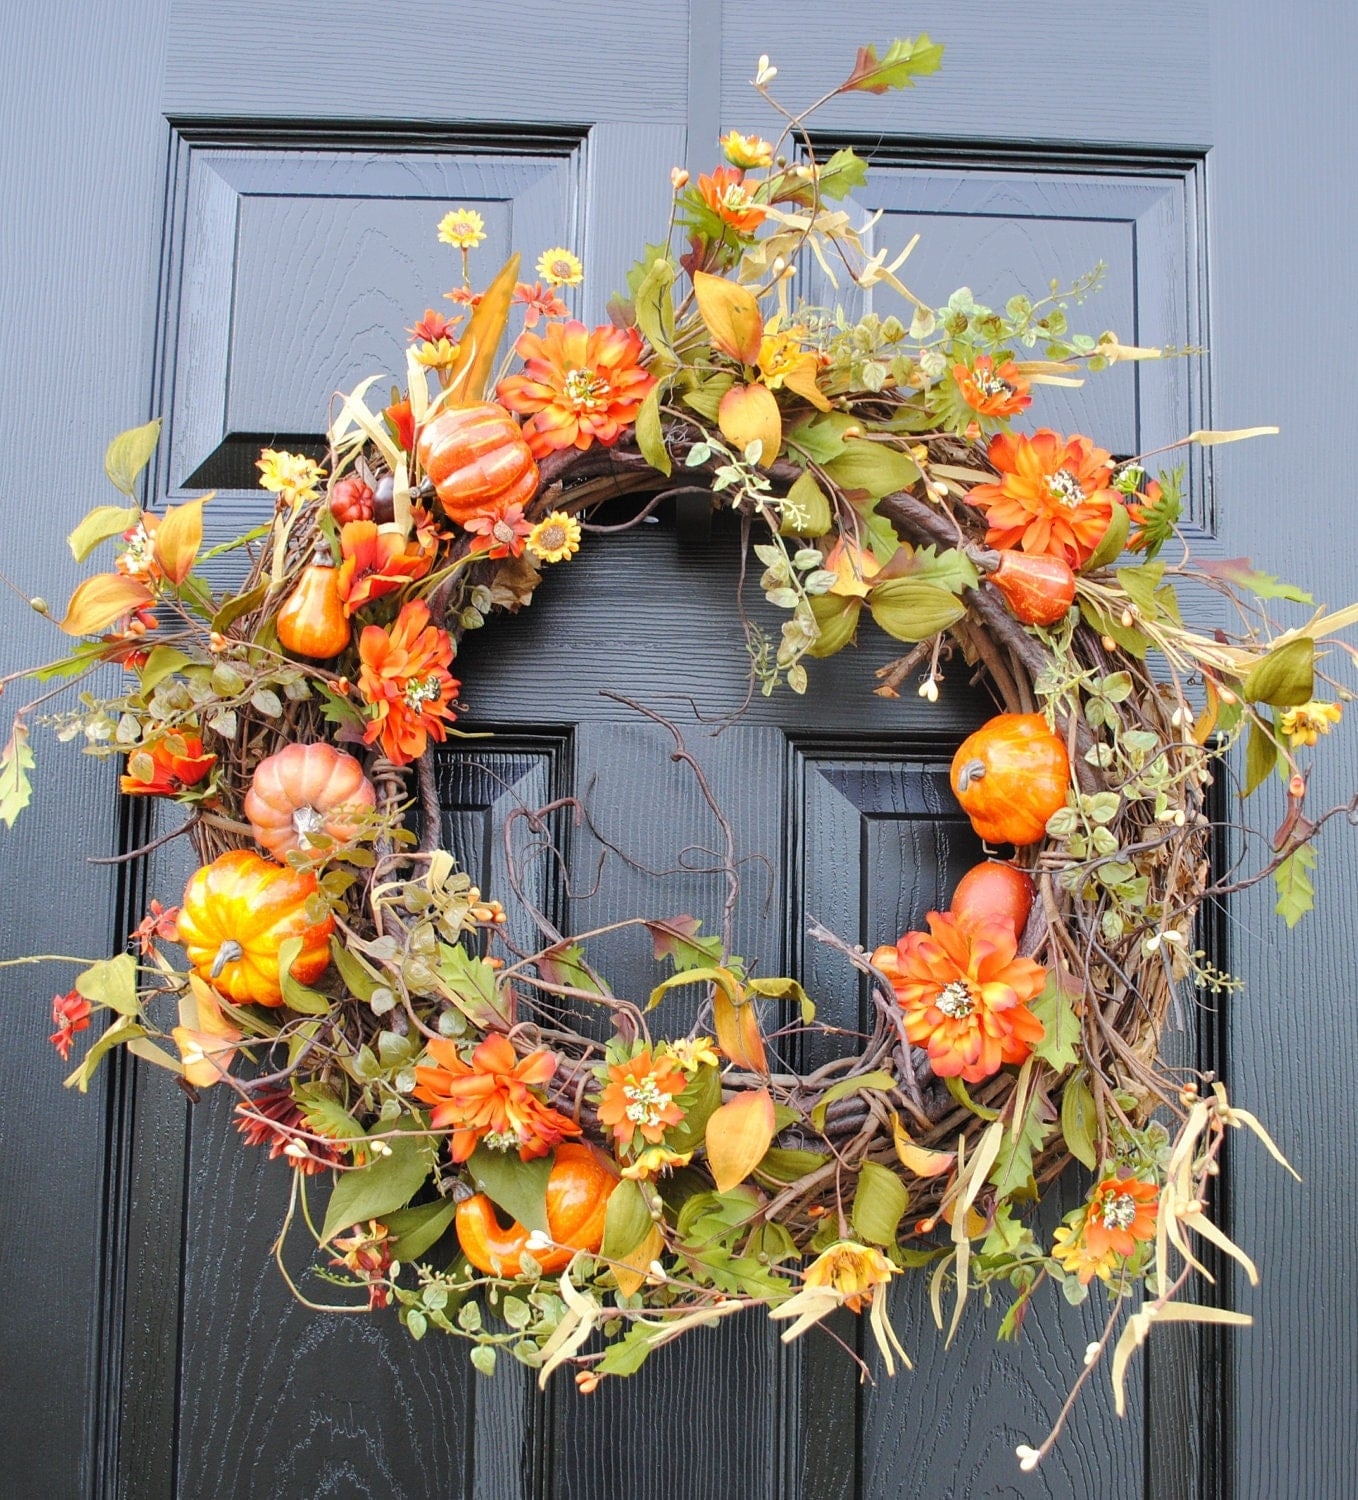 Sale Autumn Wreath Fall Decor Pumpkins And Gourds